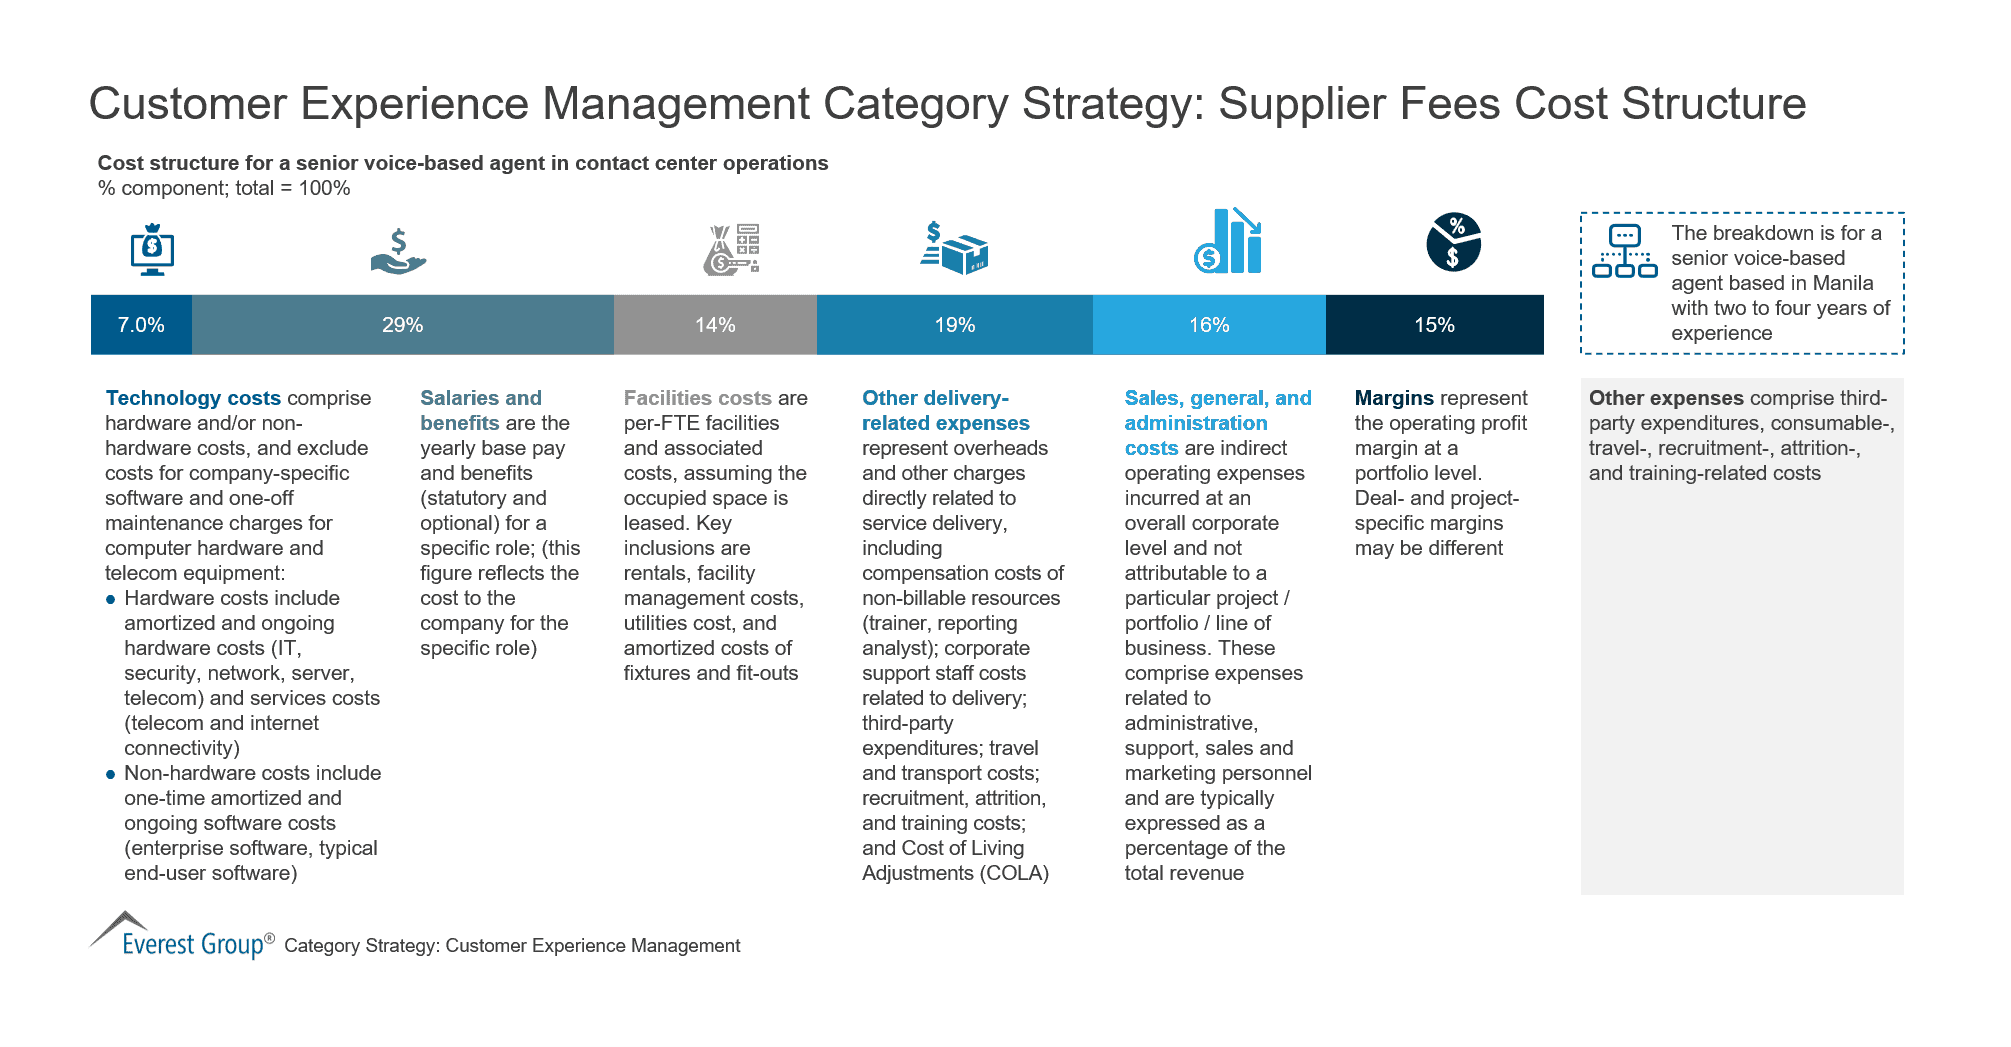 Customer Experience Management Category Strategy-Supplier Fees Cost Structure